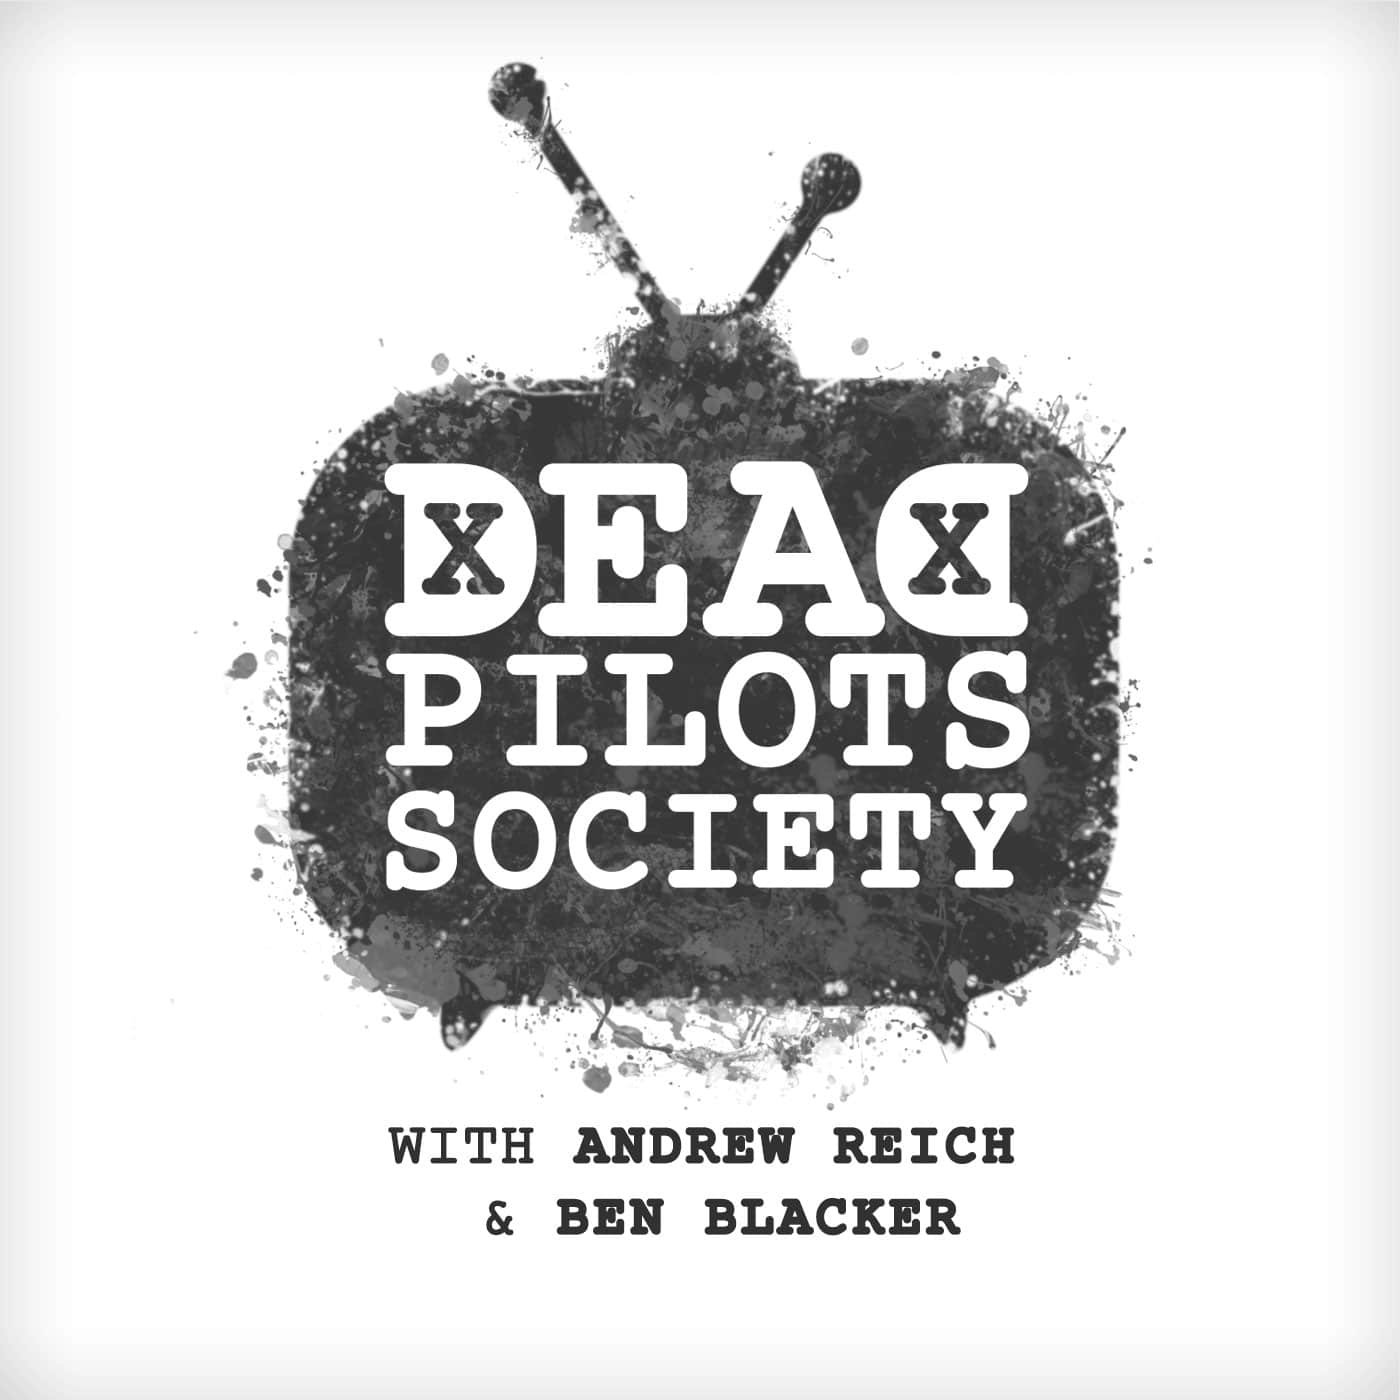 'Dead Pilots Society' podcast cover.